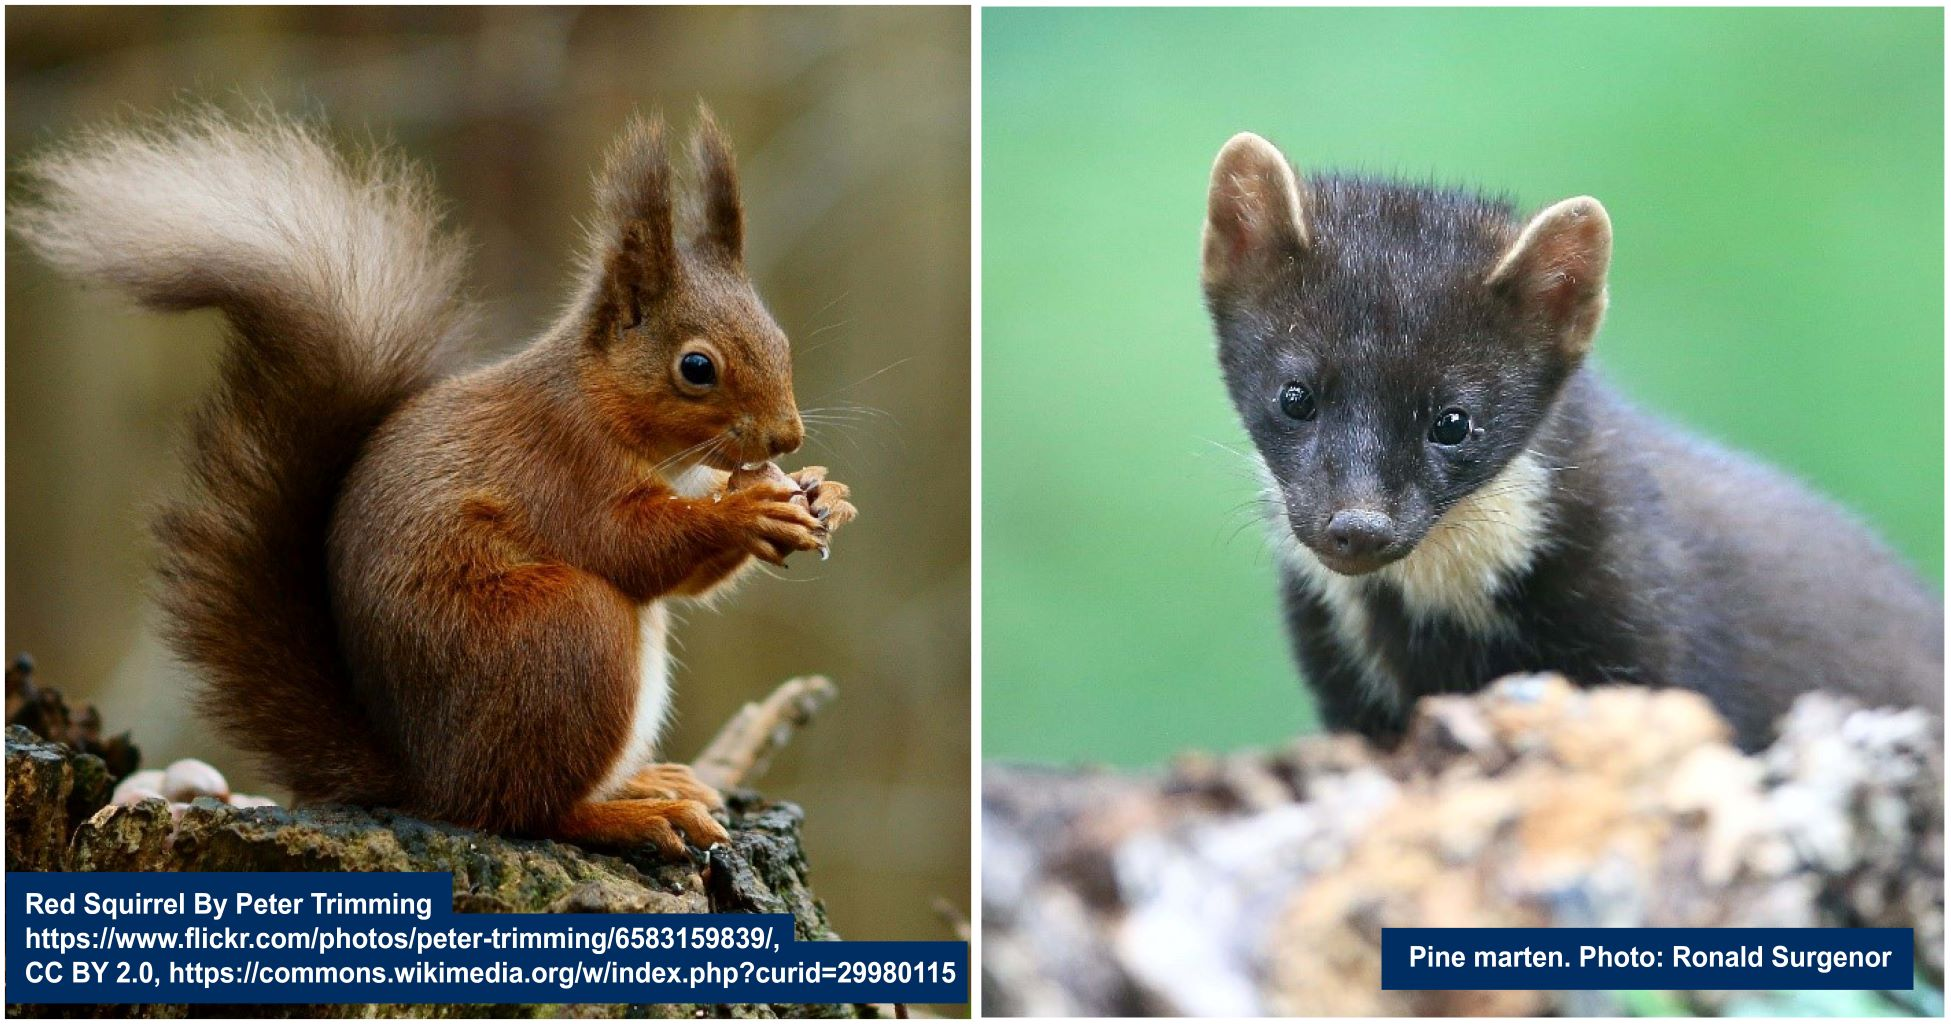 Red Squirell and Pine Marten